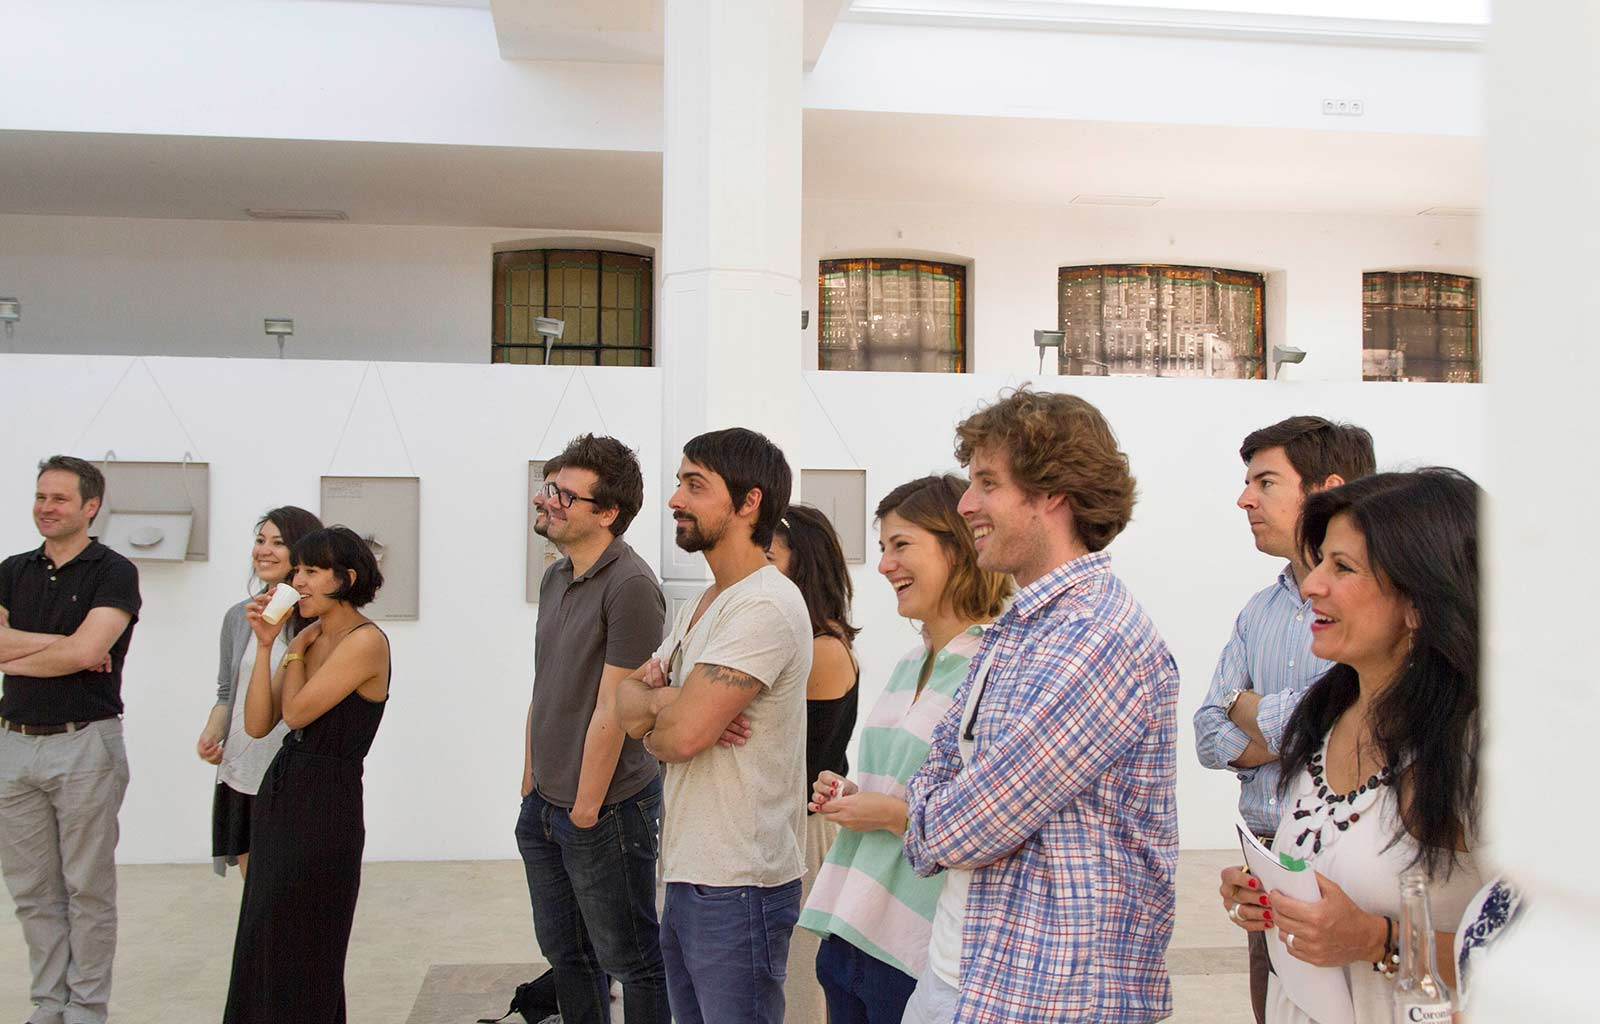 Designer Thinking About You Workshop, by Inma Bermúdez